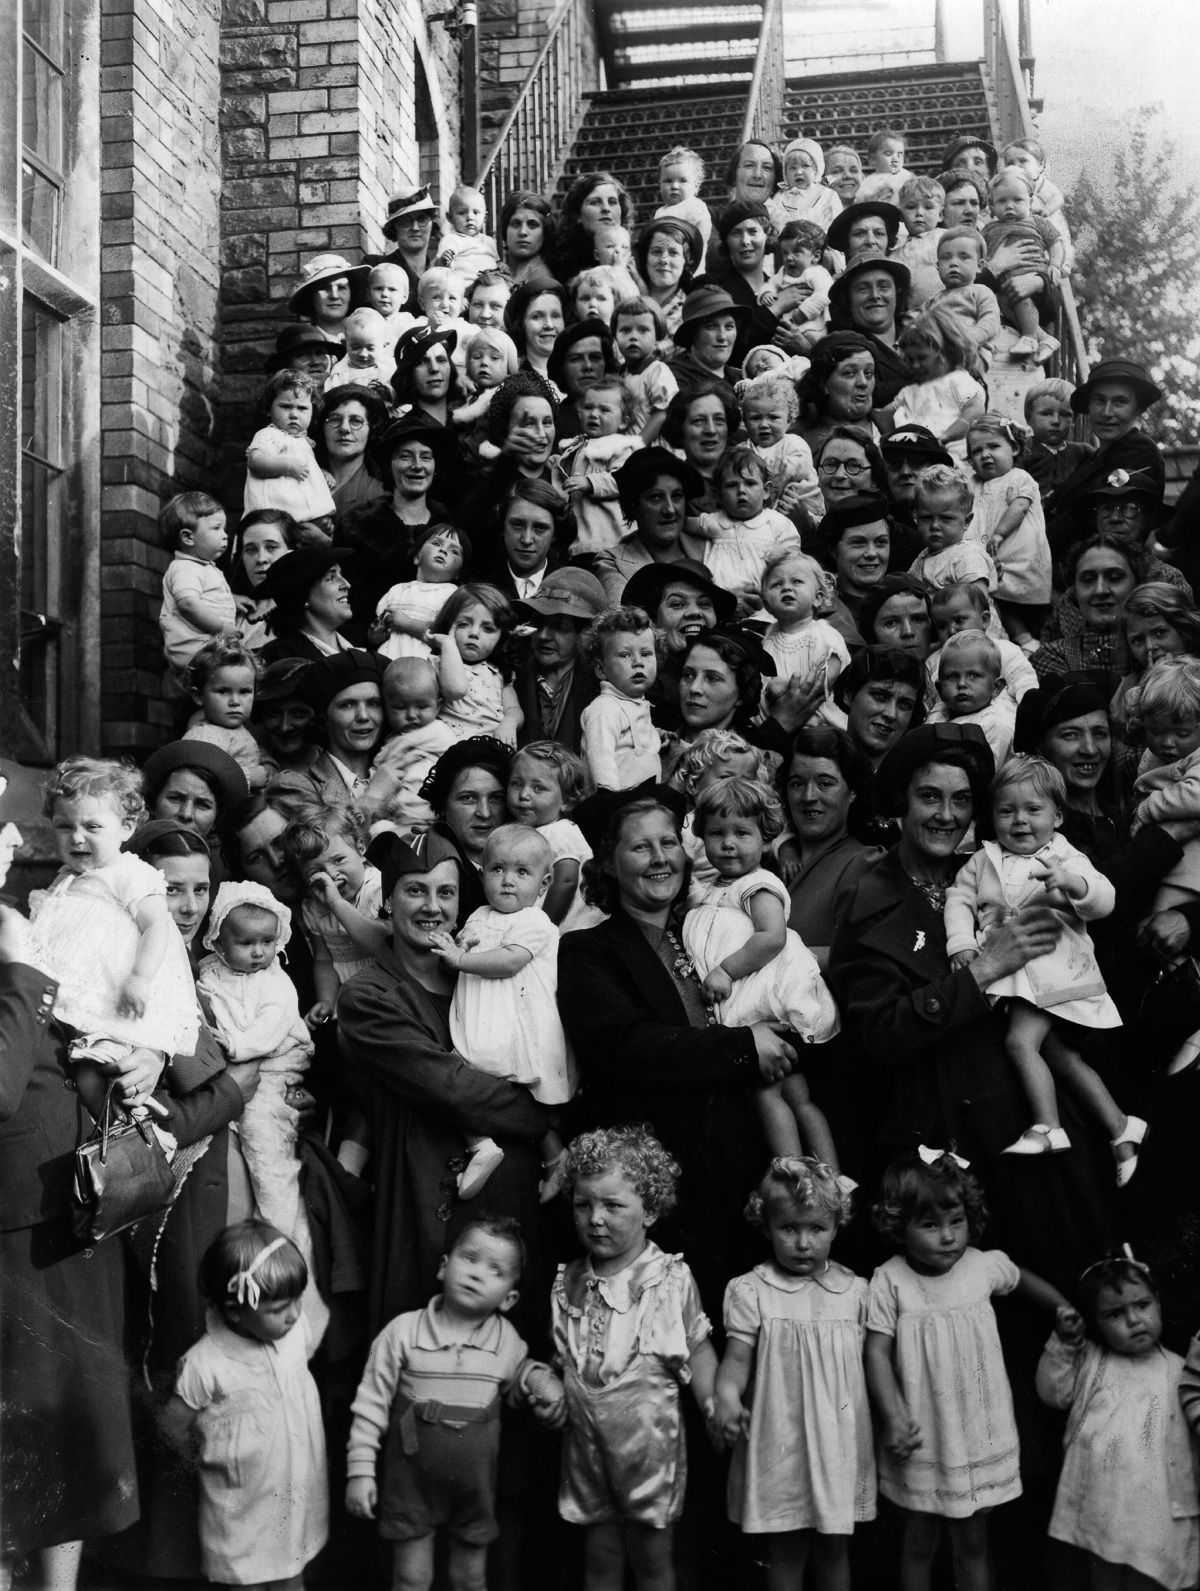 These historical photos communicate how huge the Baby Boom